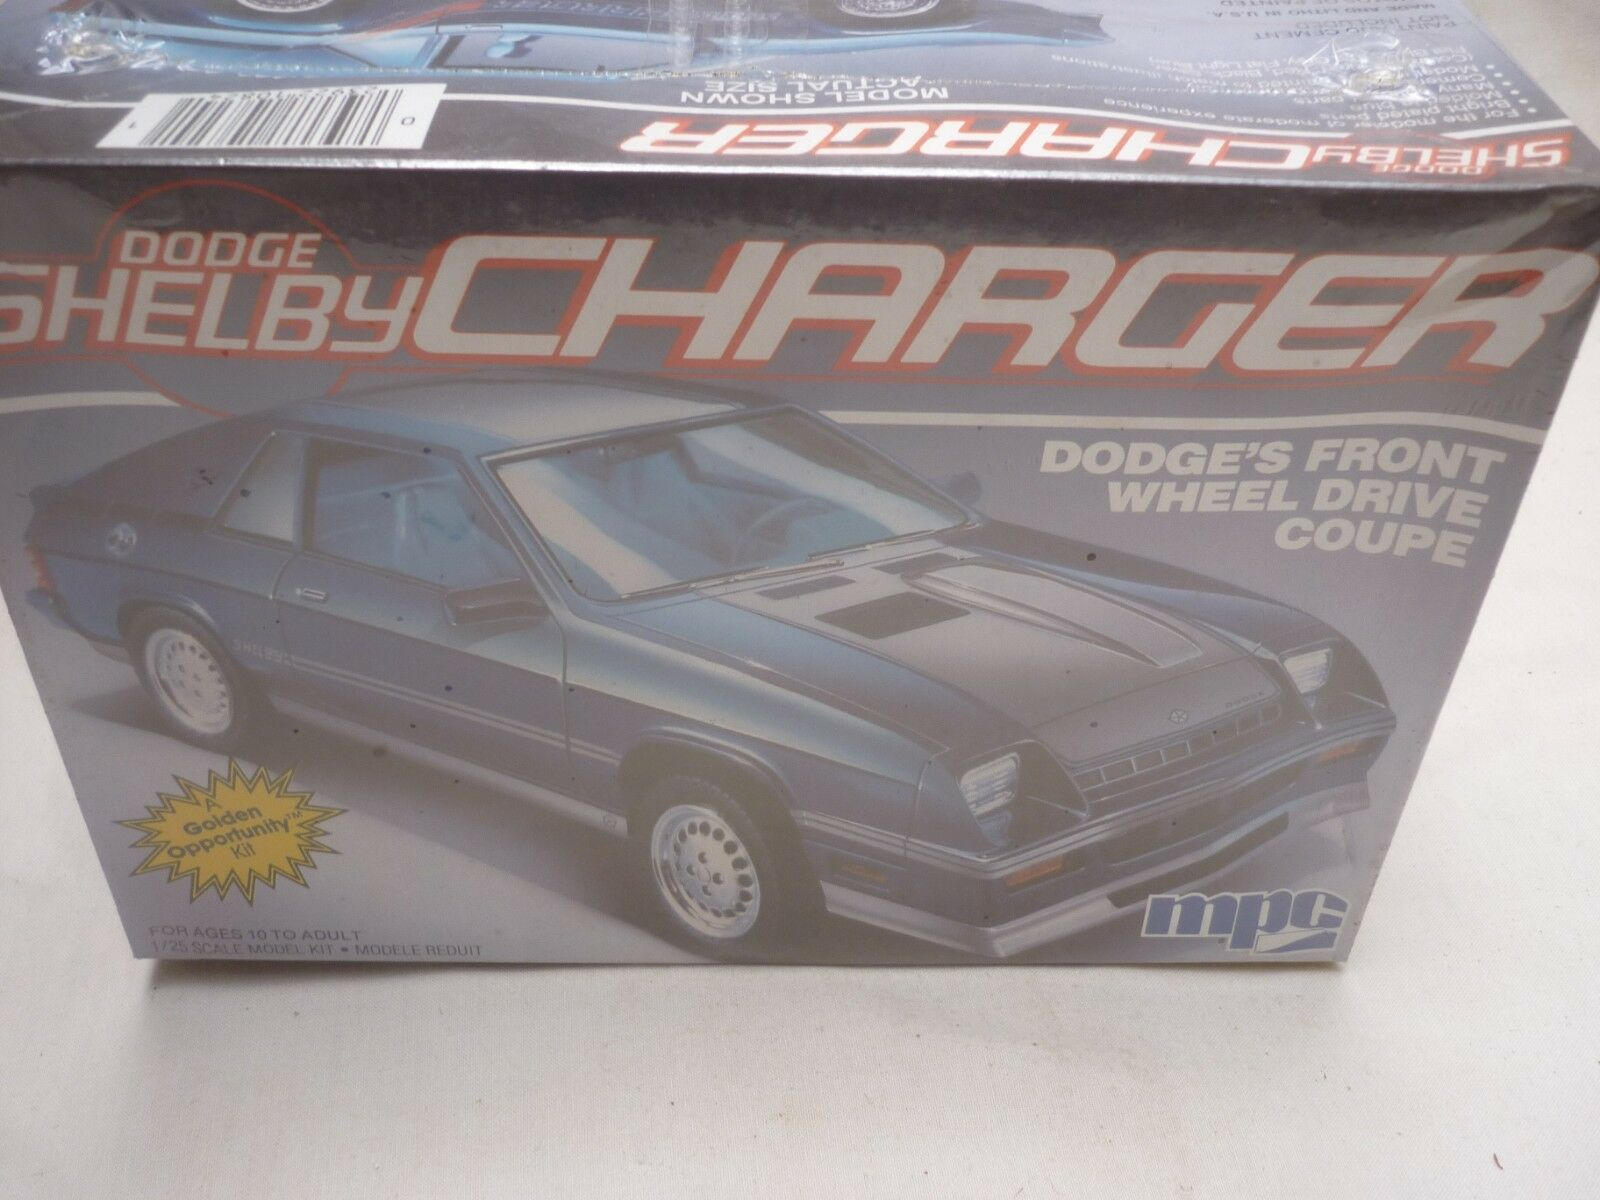 MPC, un opened plastic kit of a DODGE Shelby Charger, factory sealed   fresh